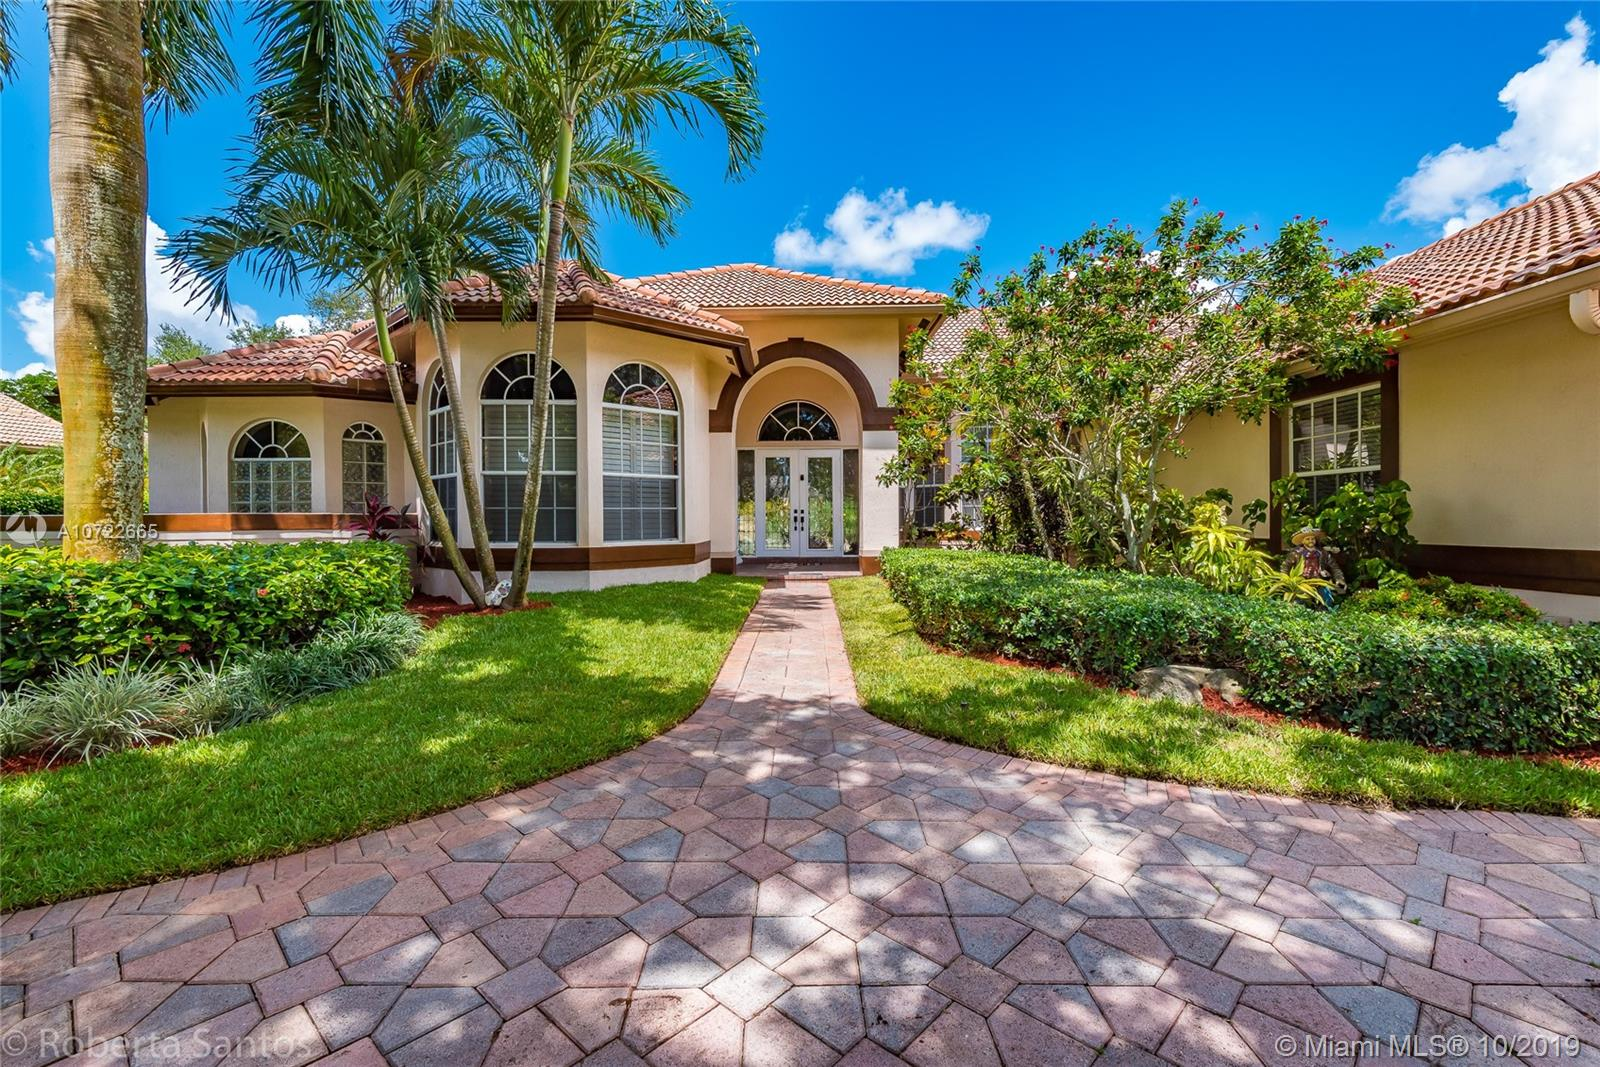 1737 NW 124th Way, Coral Springs, FL 33071